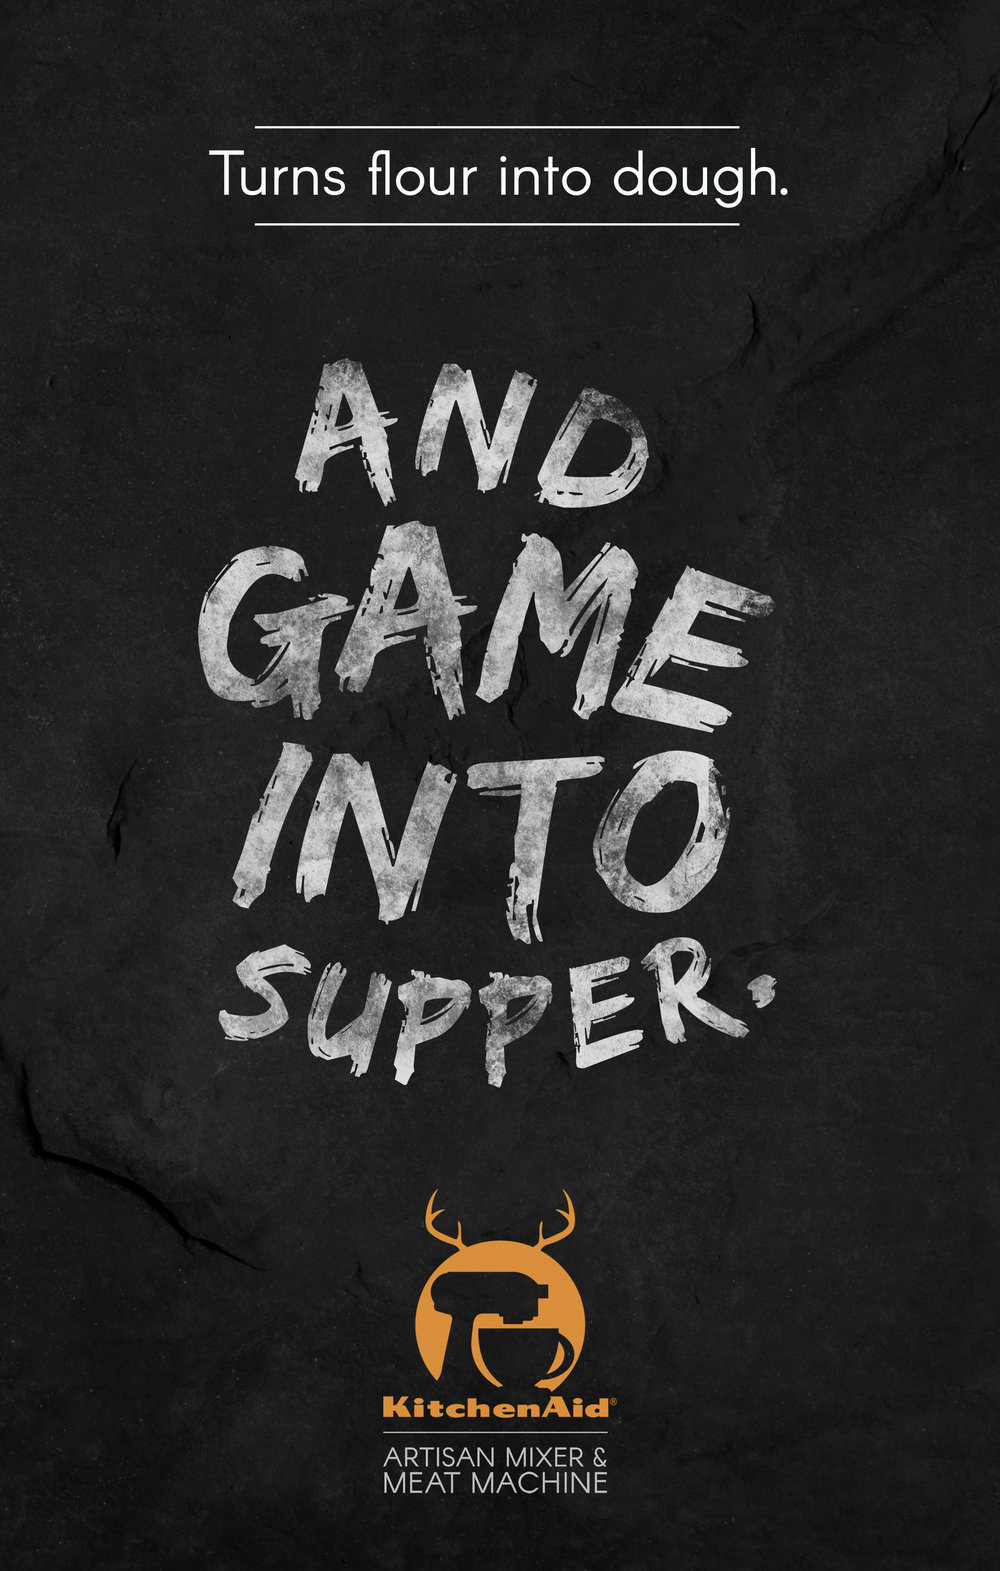 gameintosupper.jpg